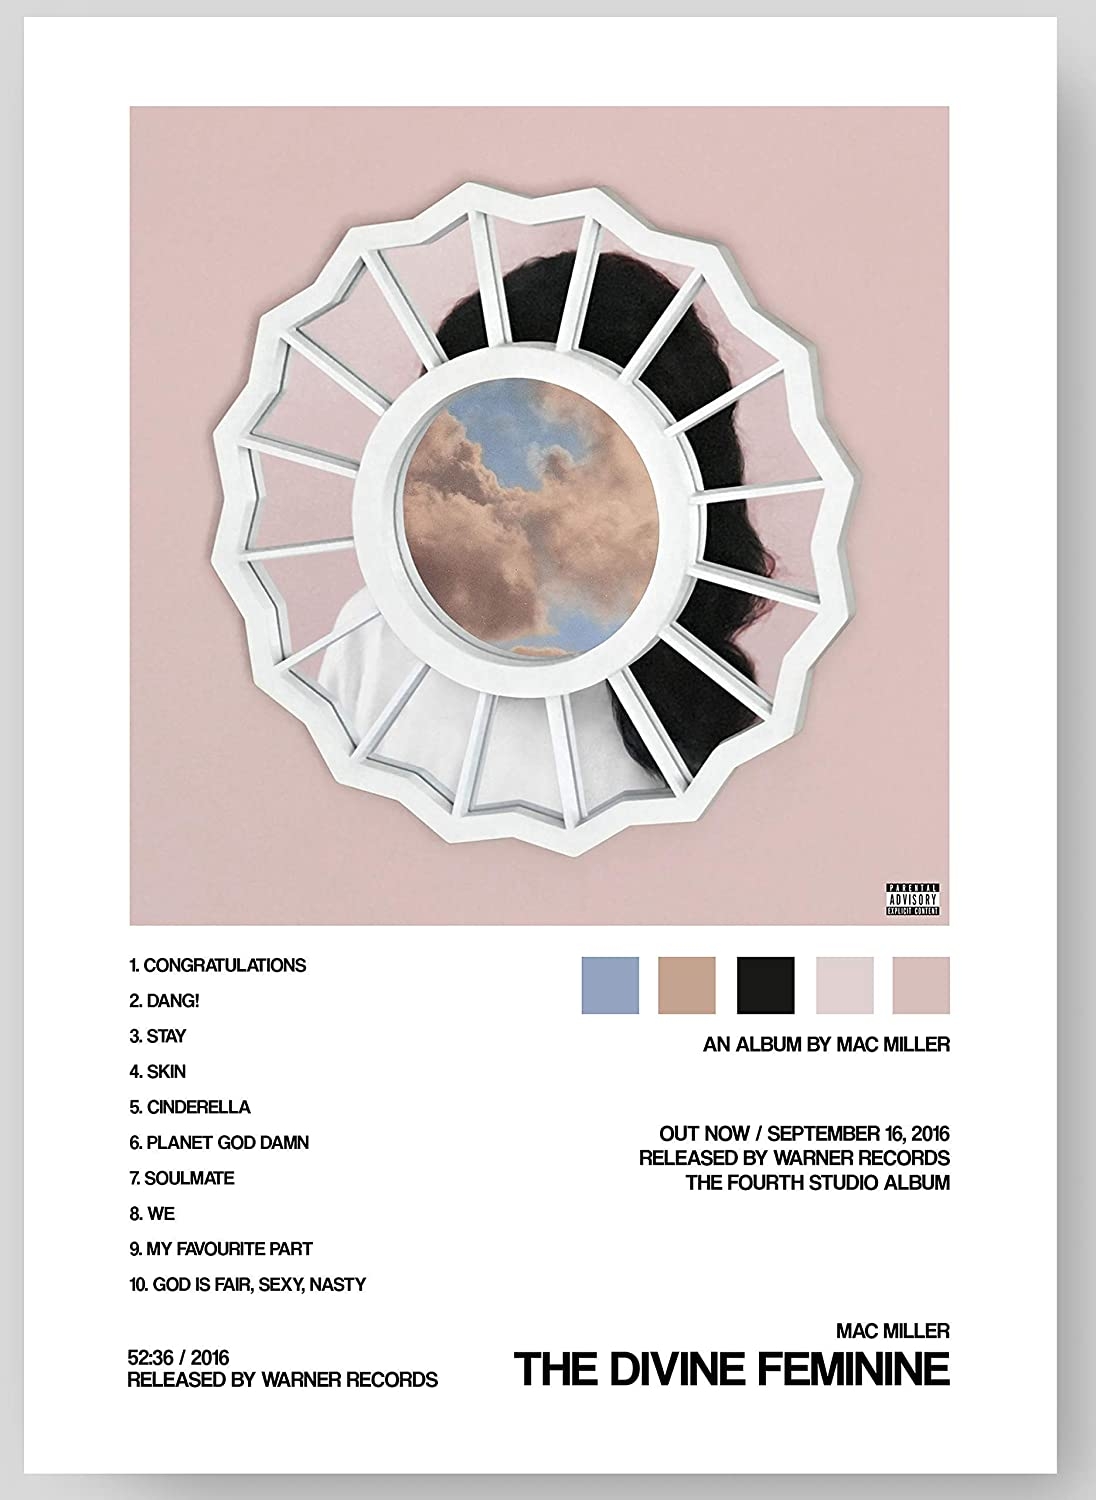 """Mac Miller - The Divine Feminine Album Cover Poster Print With Track List and Color Tiles - 11"""" x 17"""" inches Ready to Frame - Wall Art"""